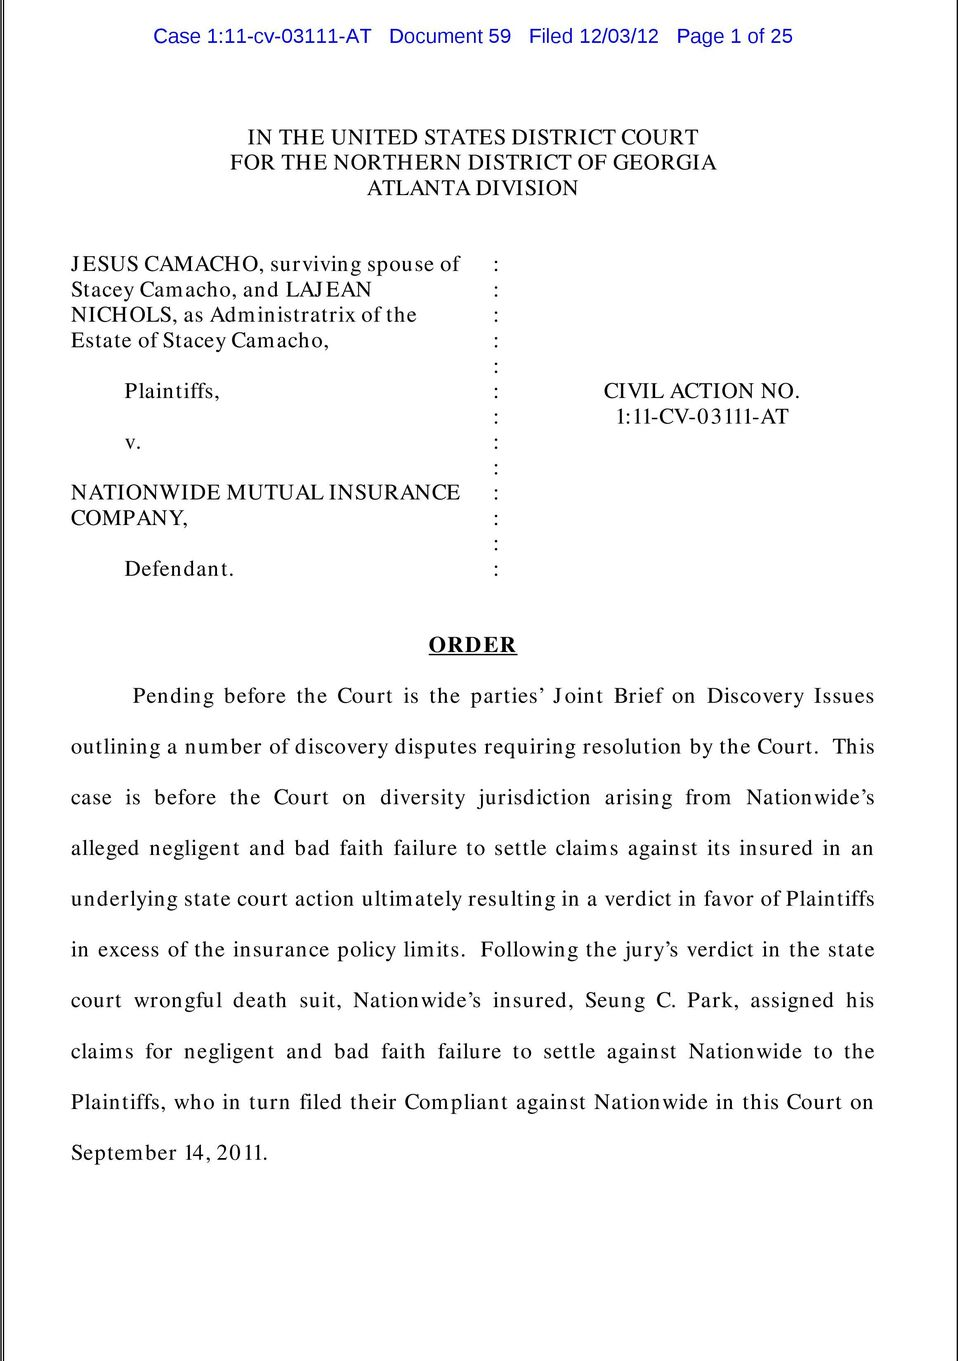 111-CV-03111-AT ORDER Pending before the Court is the parties Joint Brief on Discovery Issues outlining a number of discovery disputes requiring resolution by the Court.